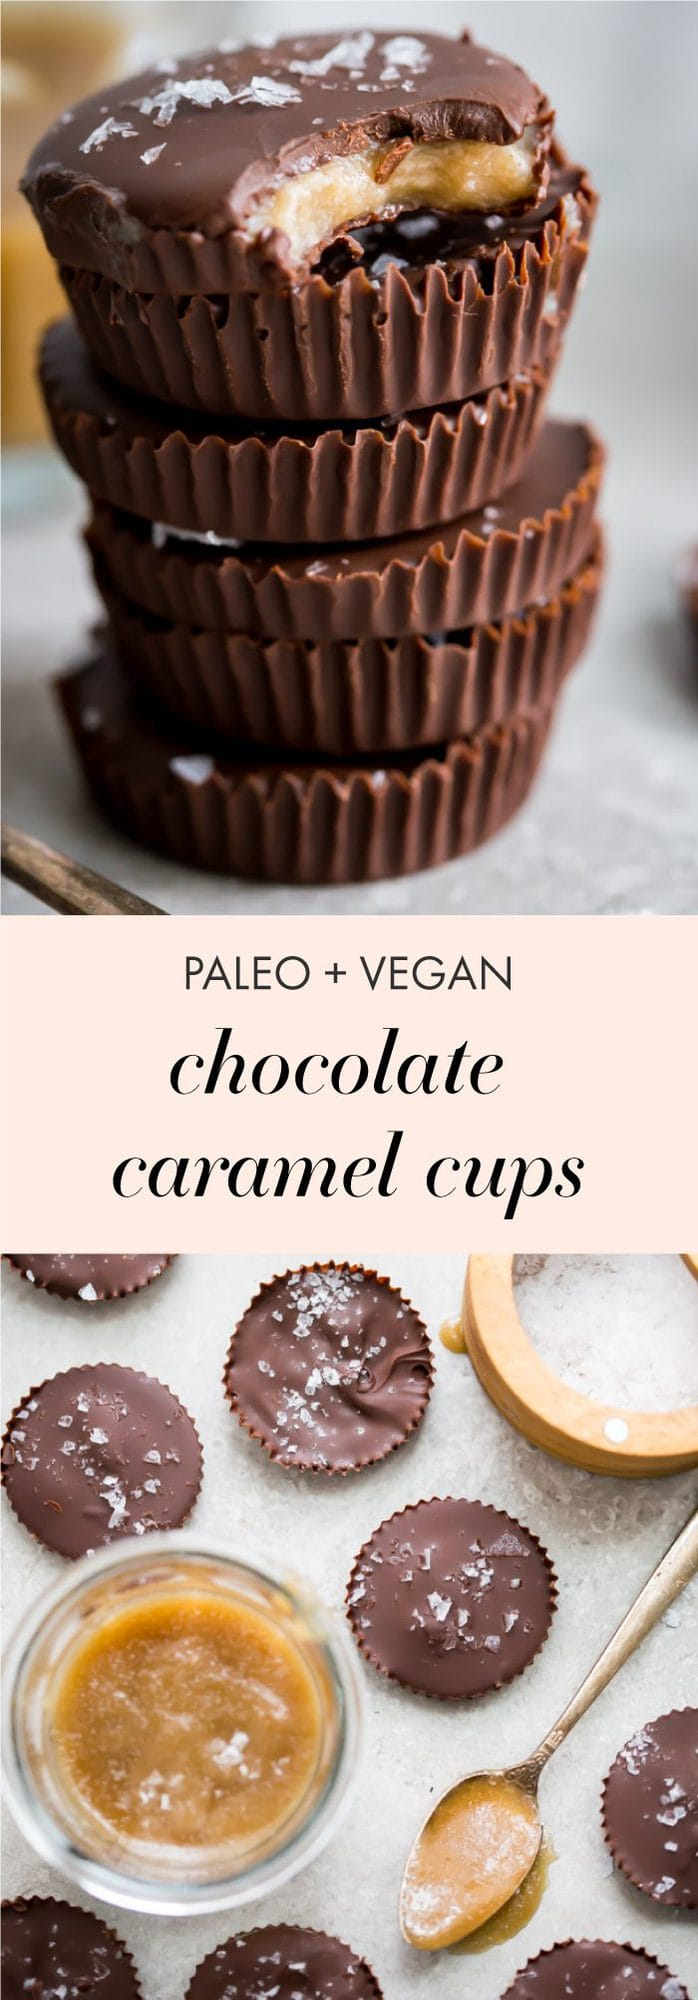 These paleo chocolate cups with caramel are rich and stuffed with a quick but delicious caramel (made in the Instant Pot!). These paleo chocolate cups with caramel are the perfect healthy candy, and I don't know anyone who wouldn't like a couple of these paleo chocolate cups with caramel for Halloween. Easy but impressive!